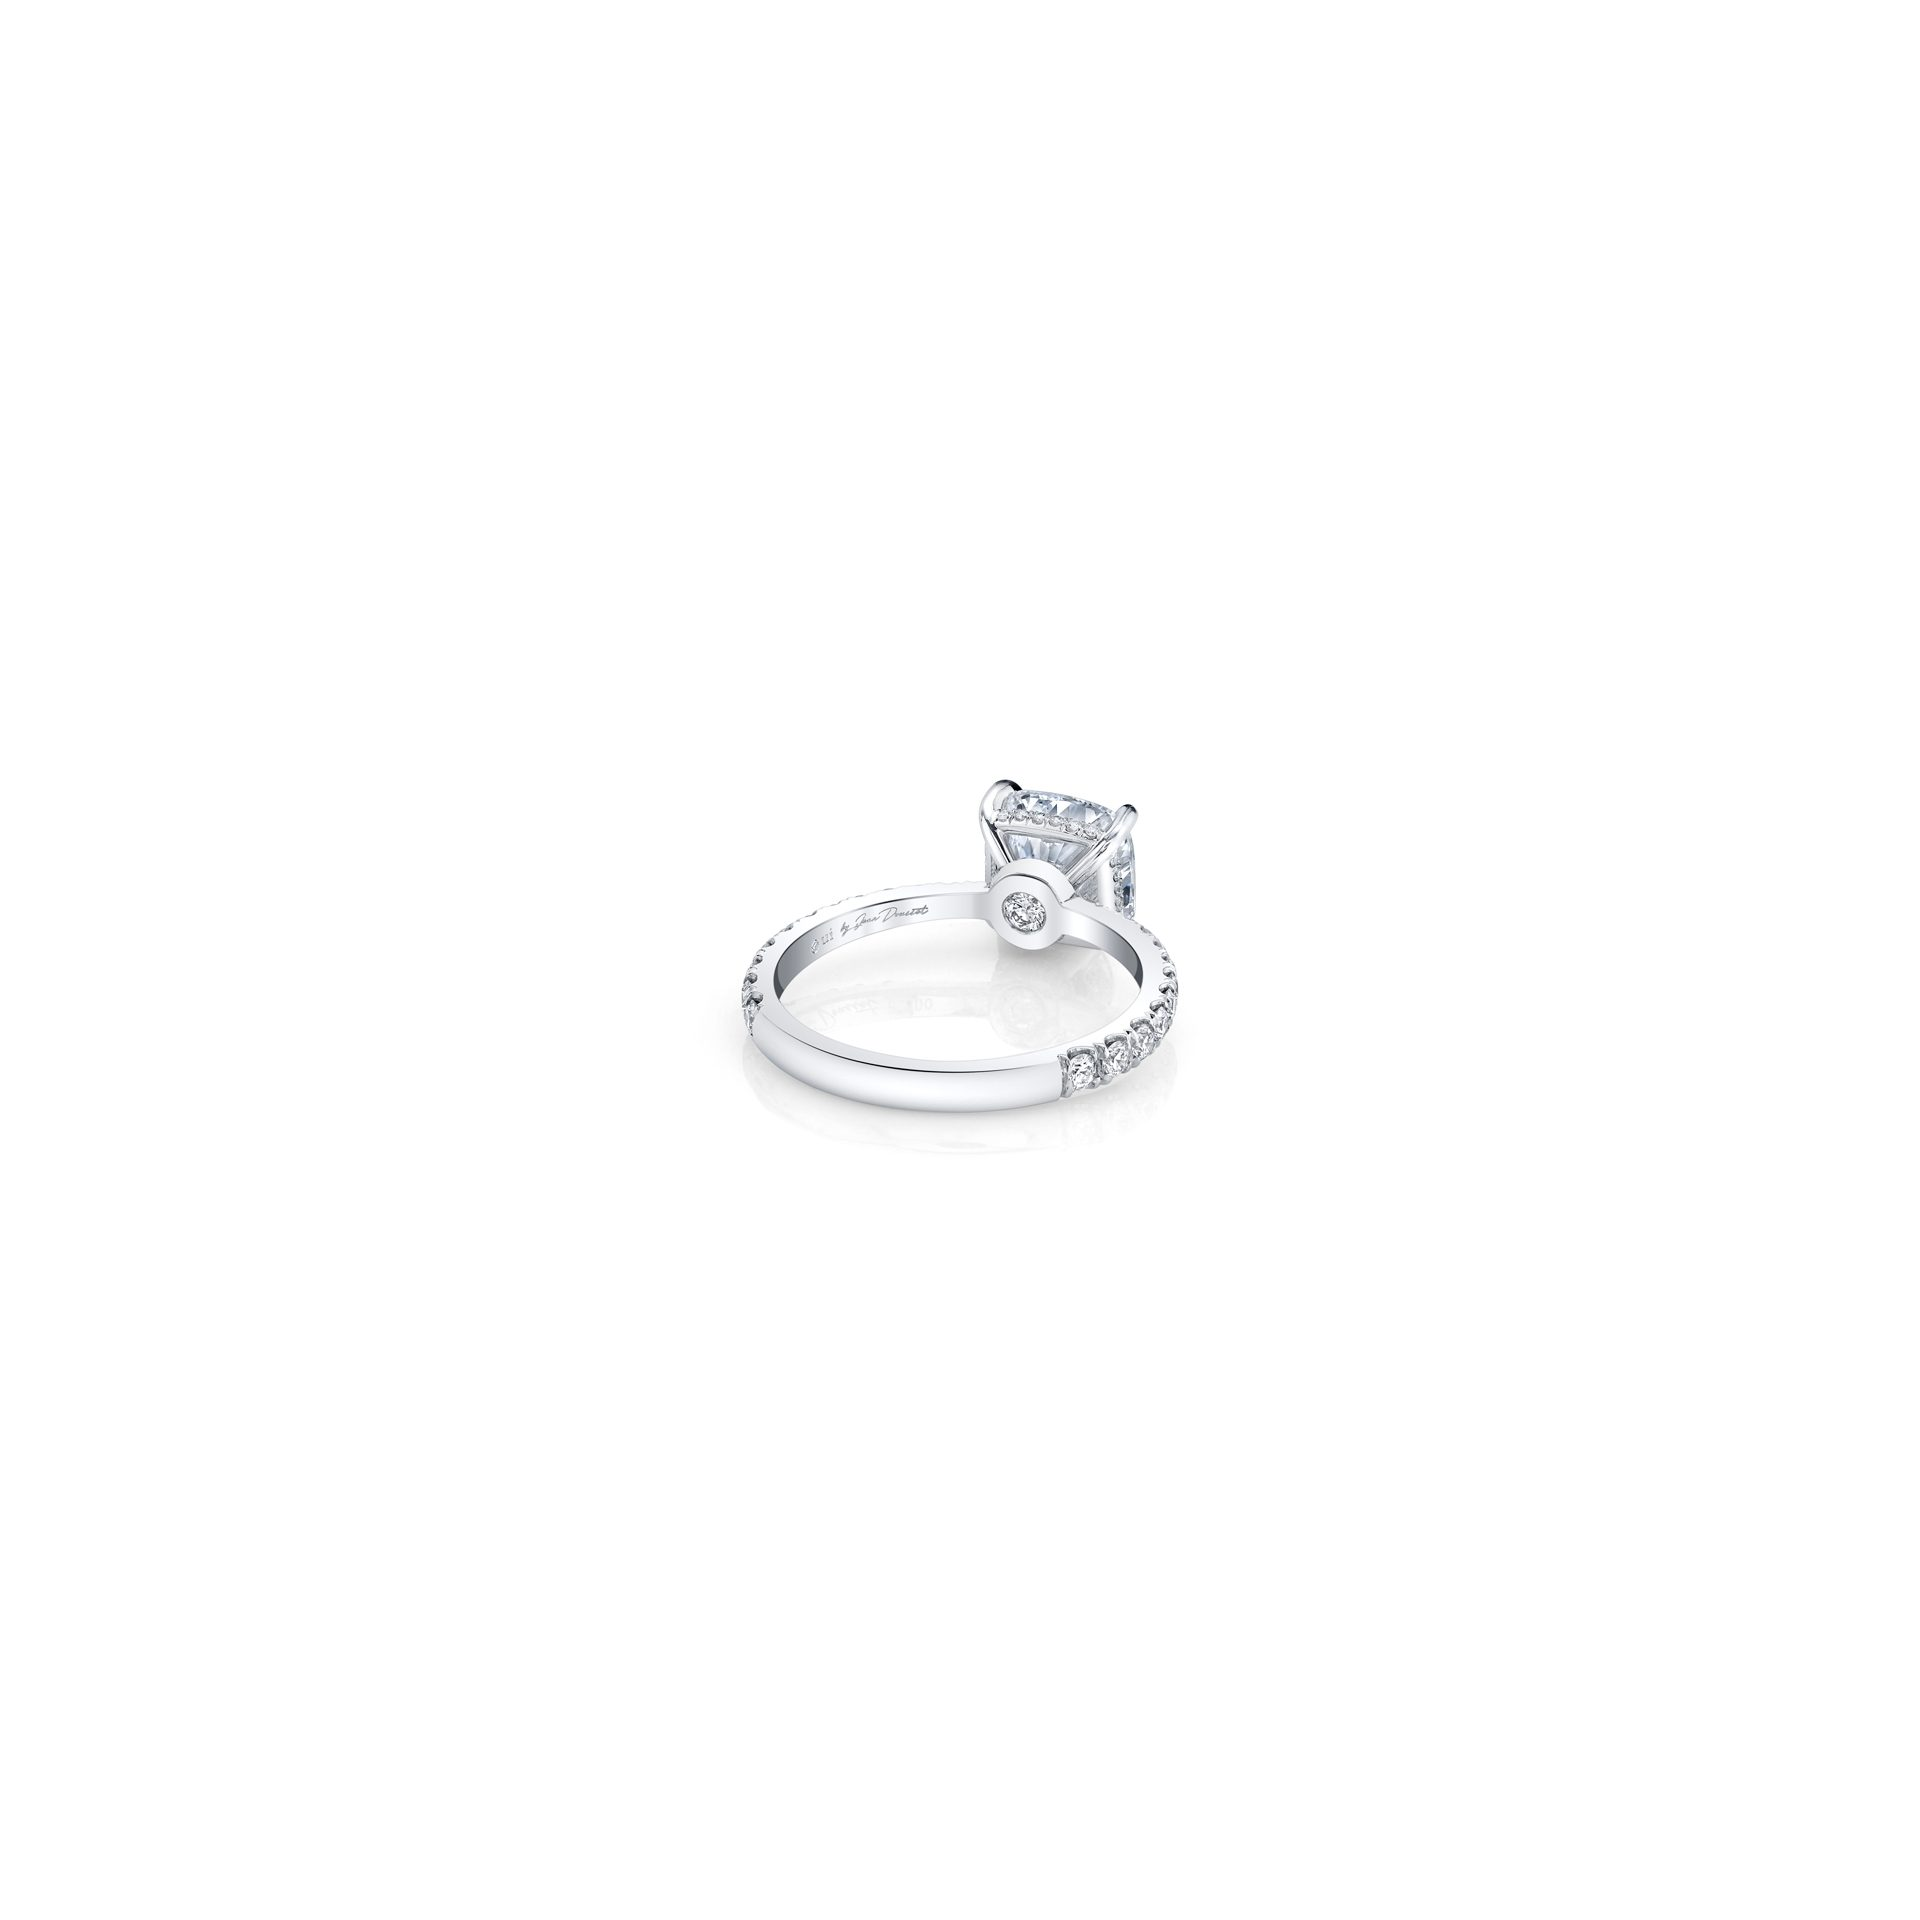 Eloise Cushion Solitaire Engagement Ring with a diamond pavé band in 18k White Gold Back View by Oui by Jean Dousset